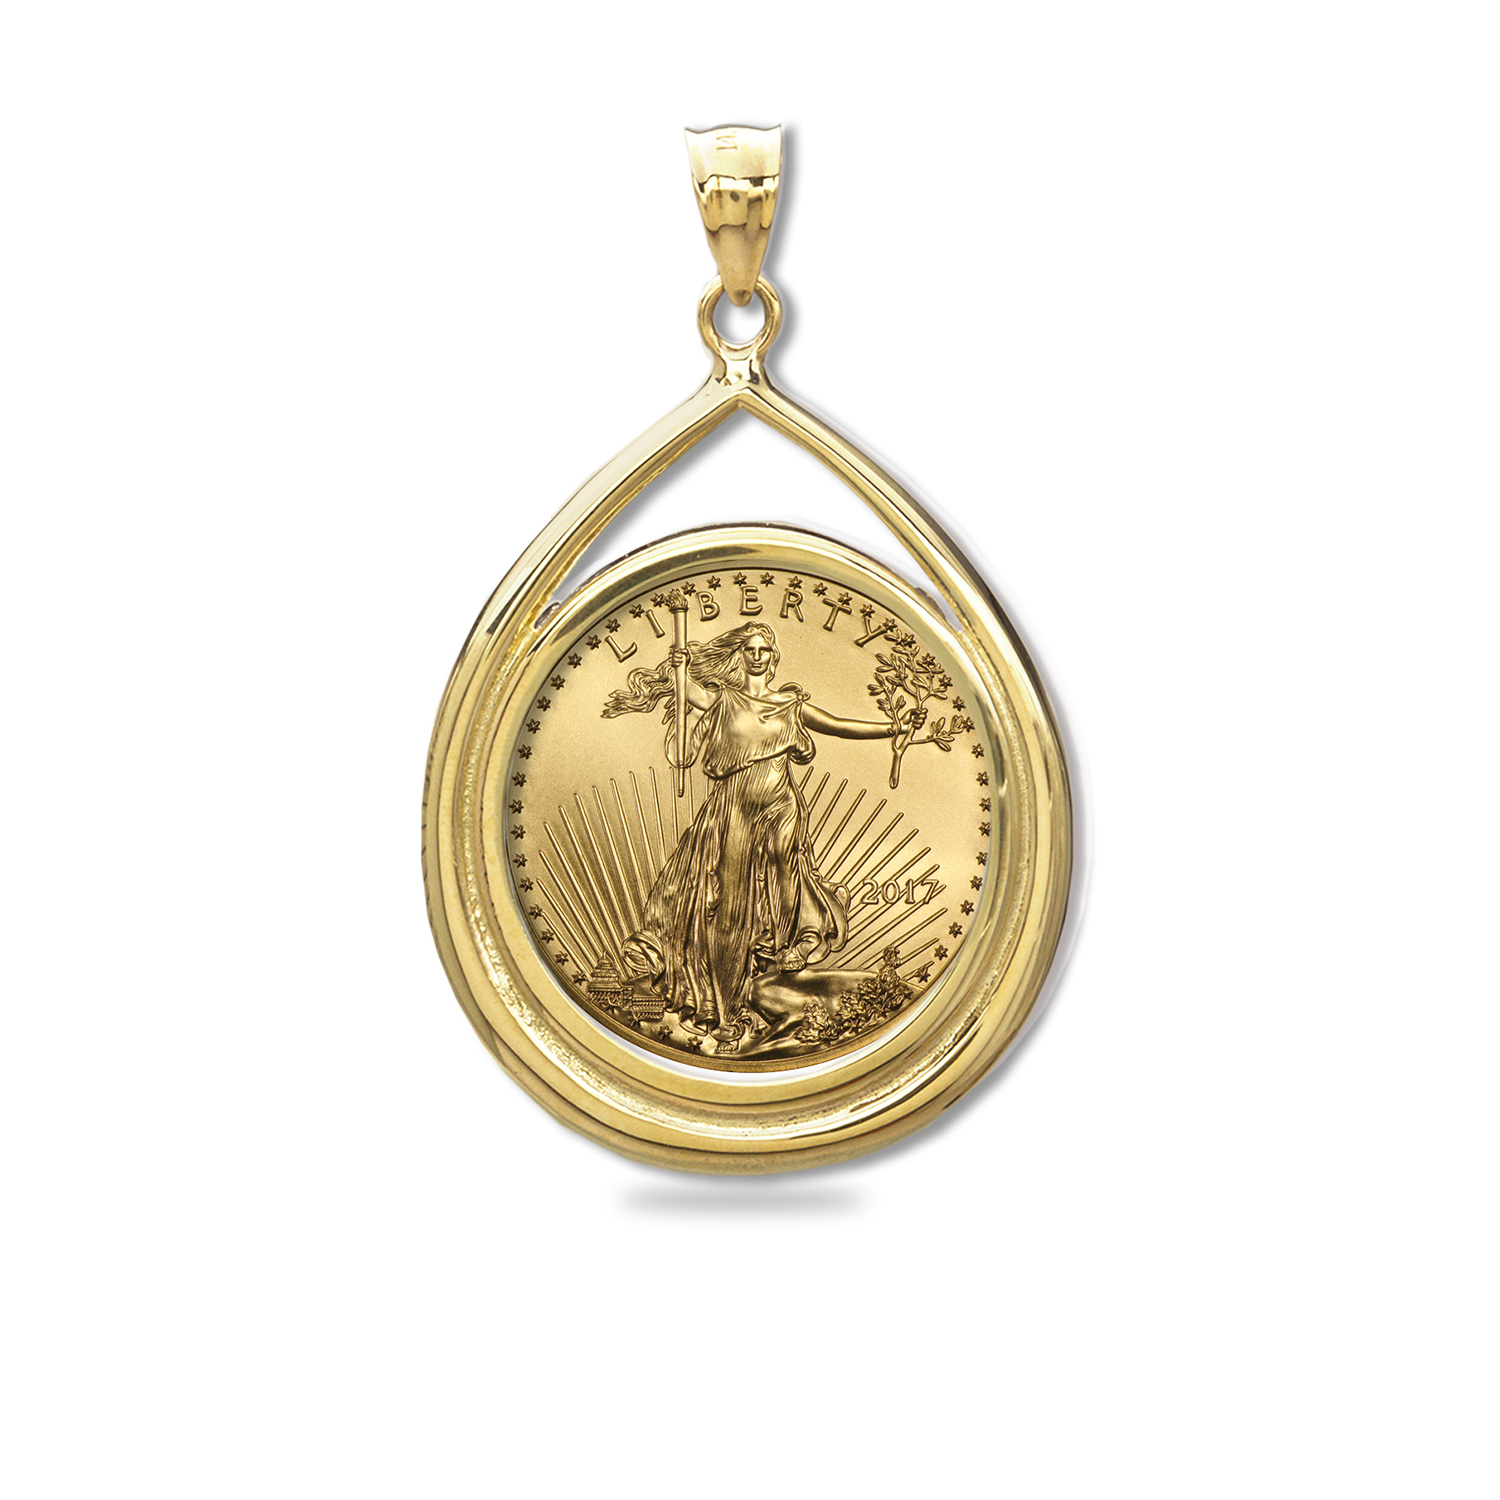 2017 1/10 oz Gold Eagle Teardrop Pendant (Prong Bezel)